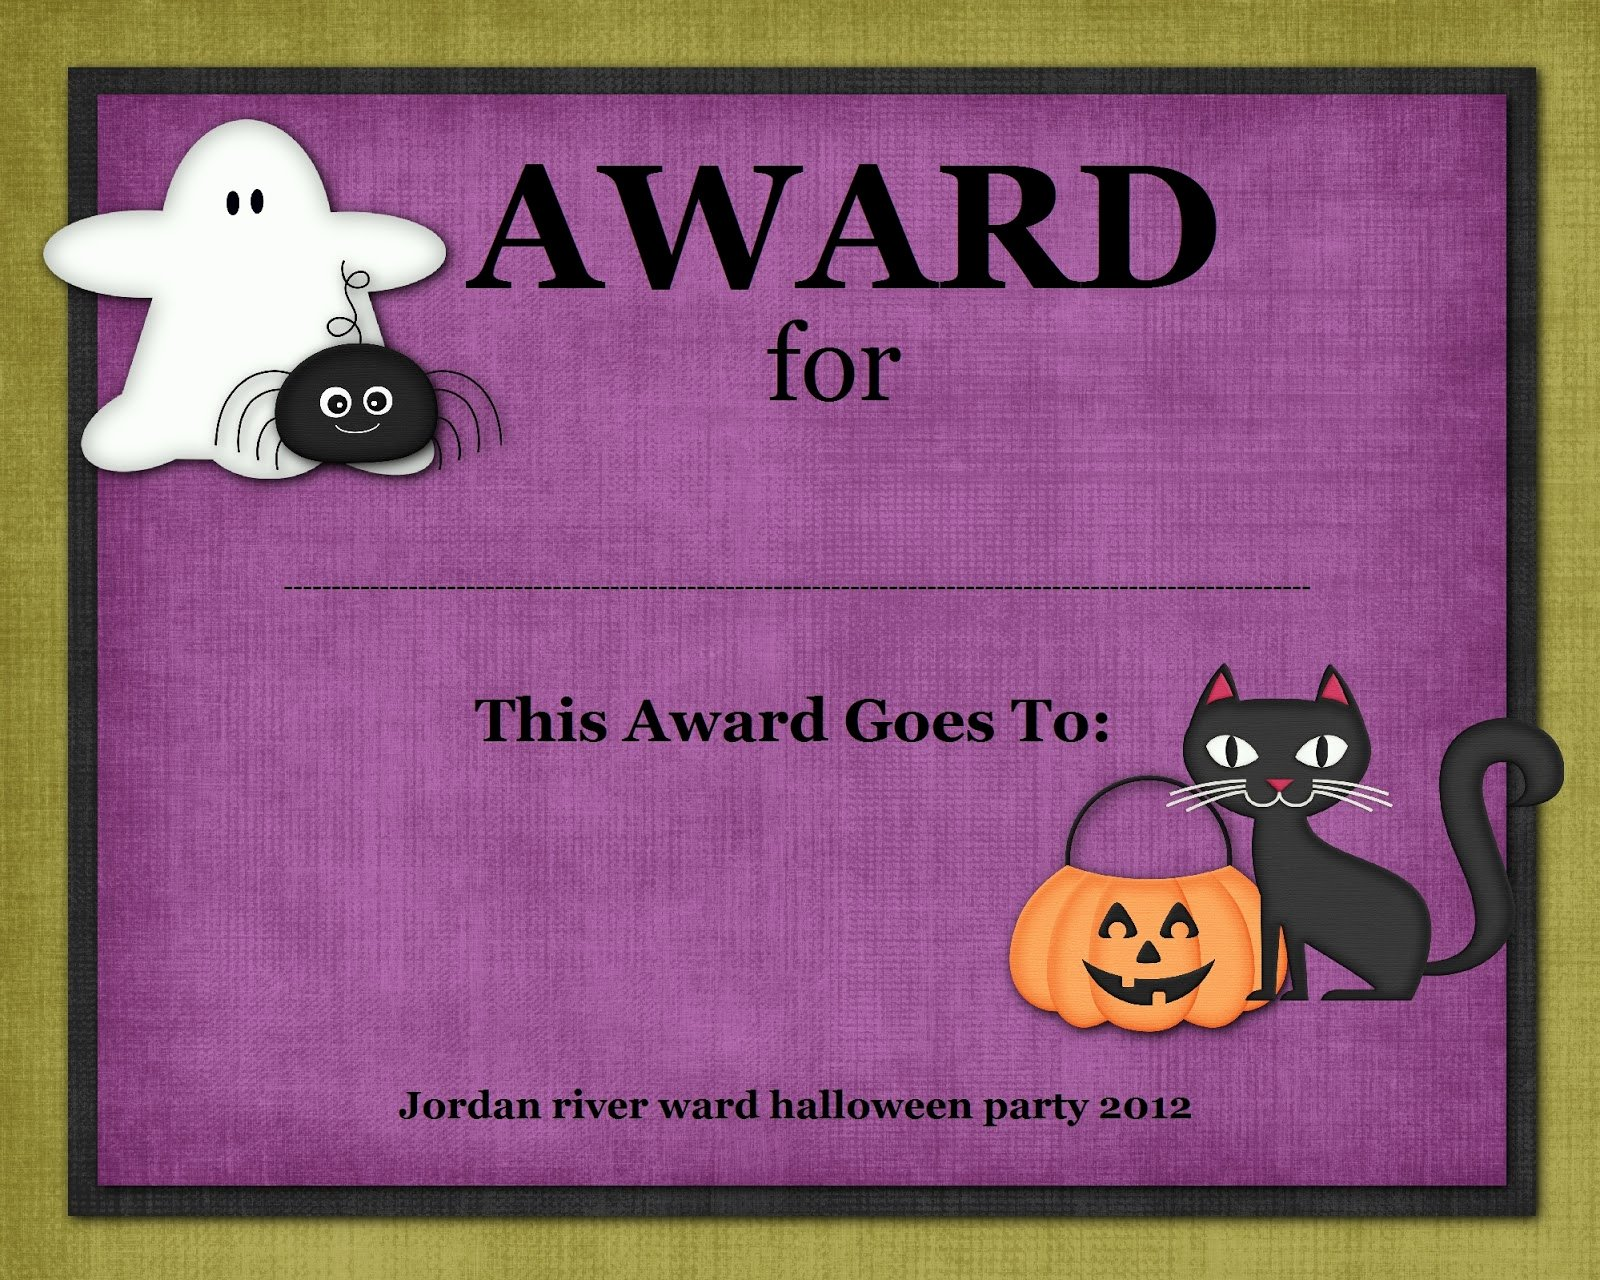 Costume Contest Certificate Template Elegant Digital Designs Scrapbooking Halloween Costume Contest Awards